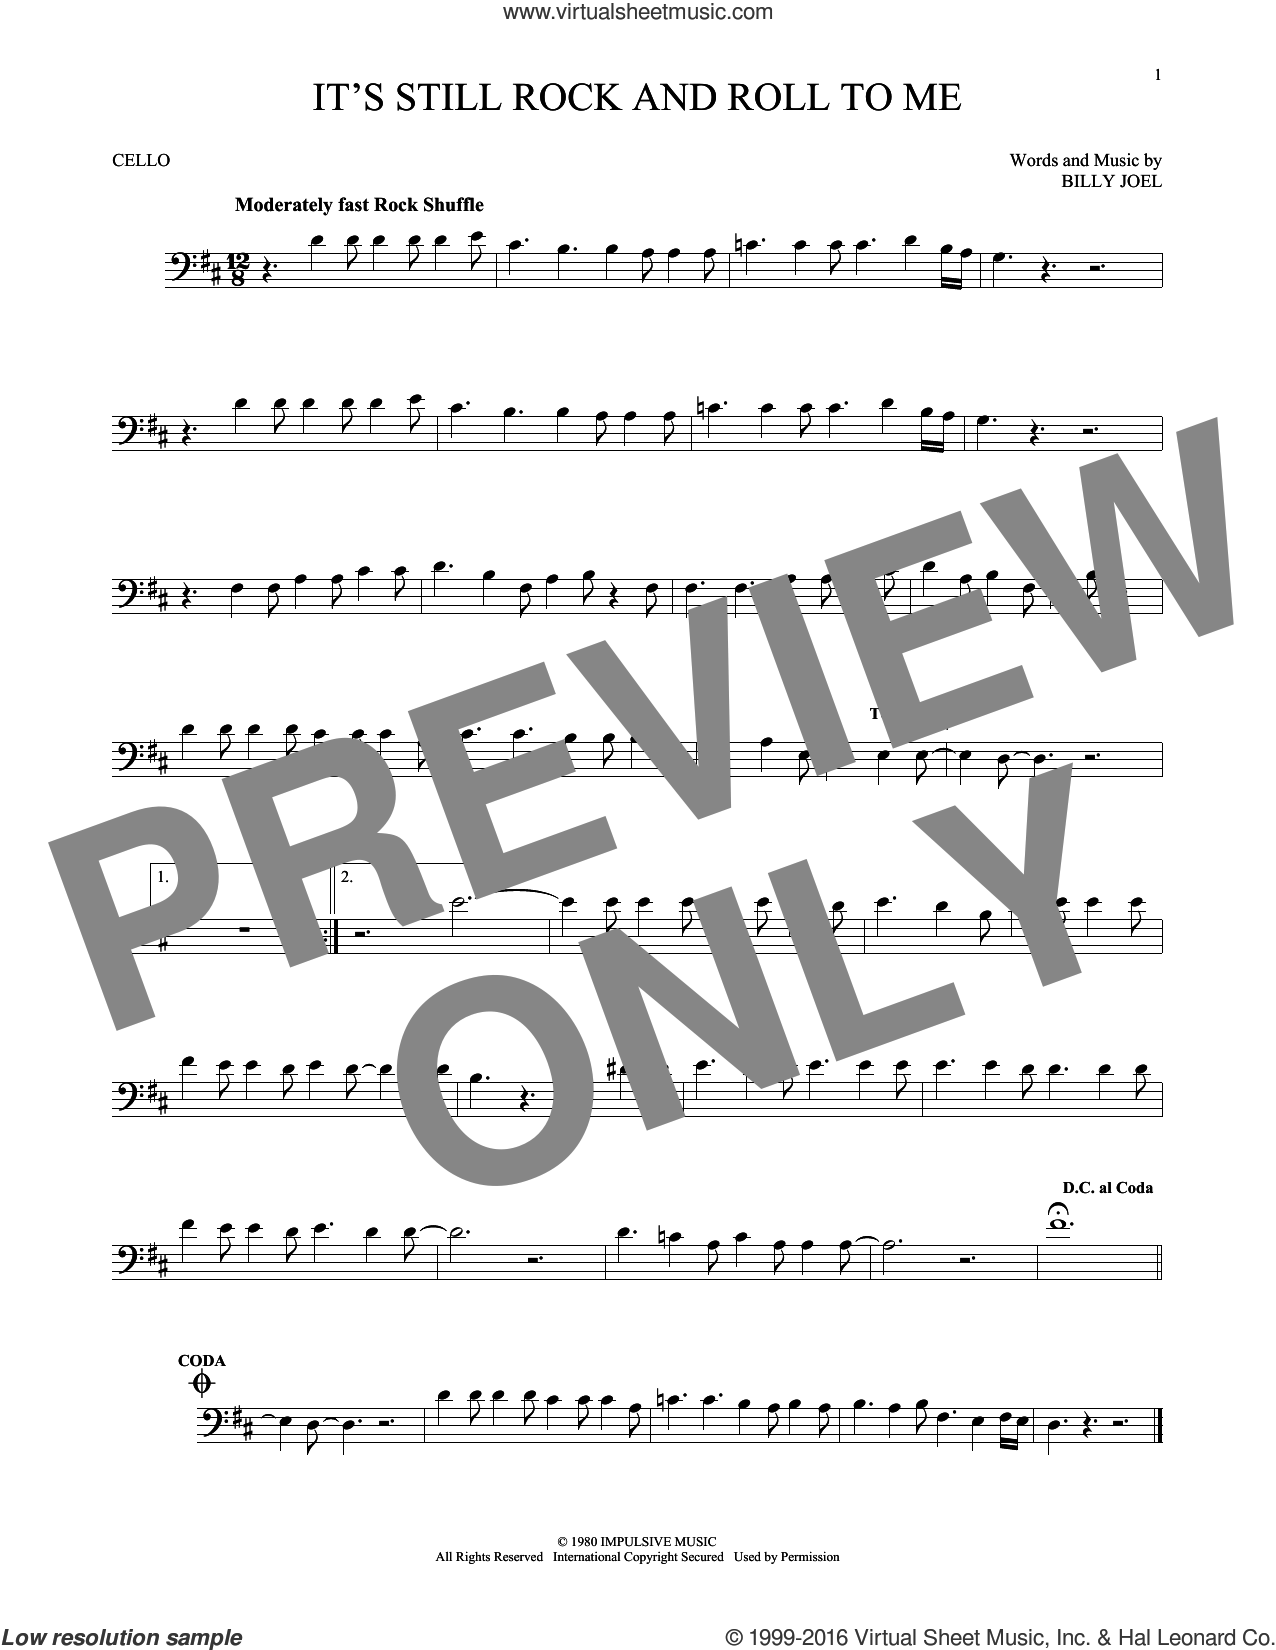 It's Still Rock And Roll To Me sheet music for cello solo by Billy Joel. Score Image Preview.